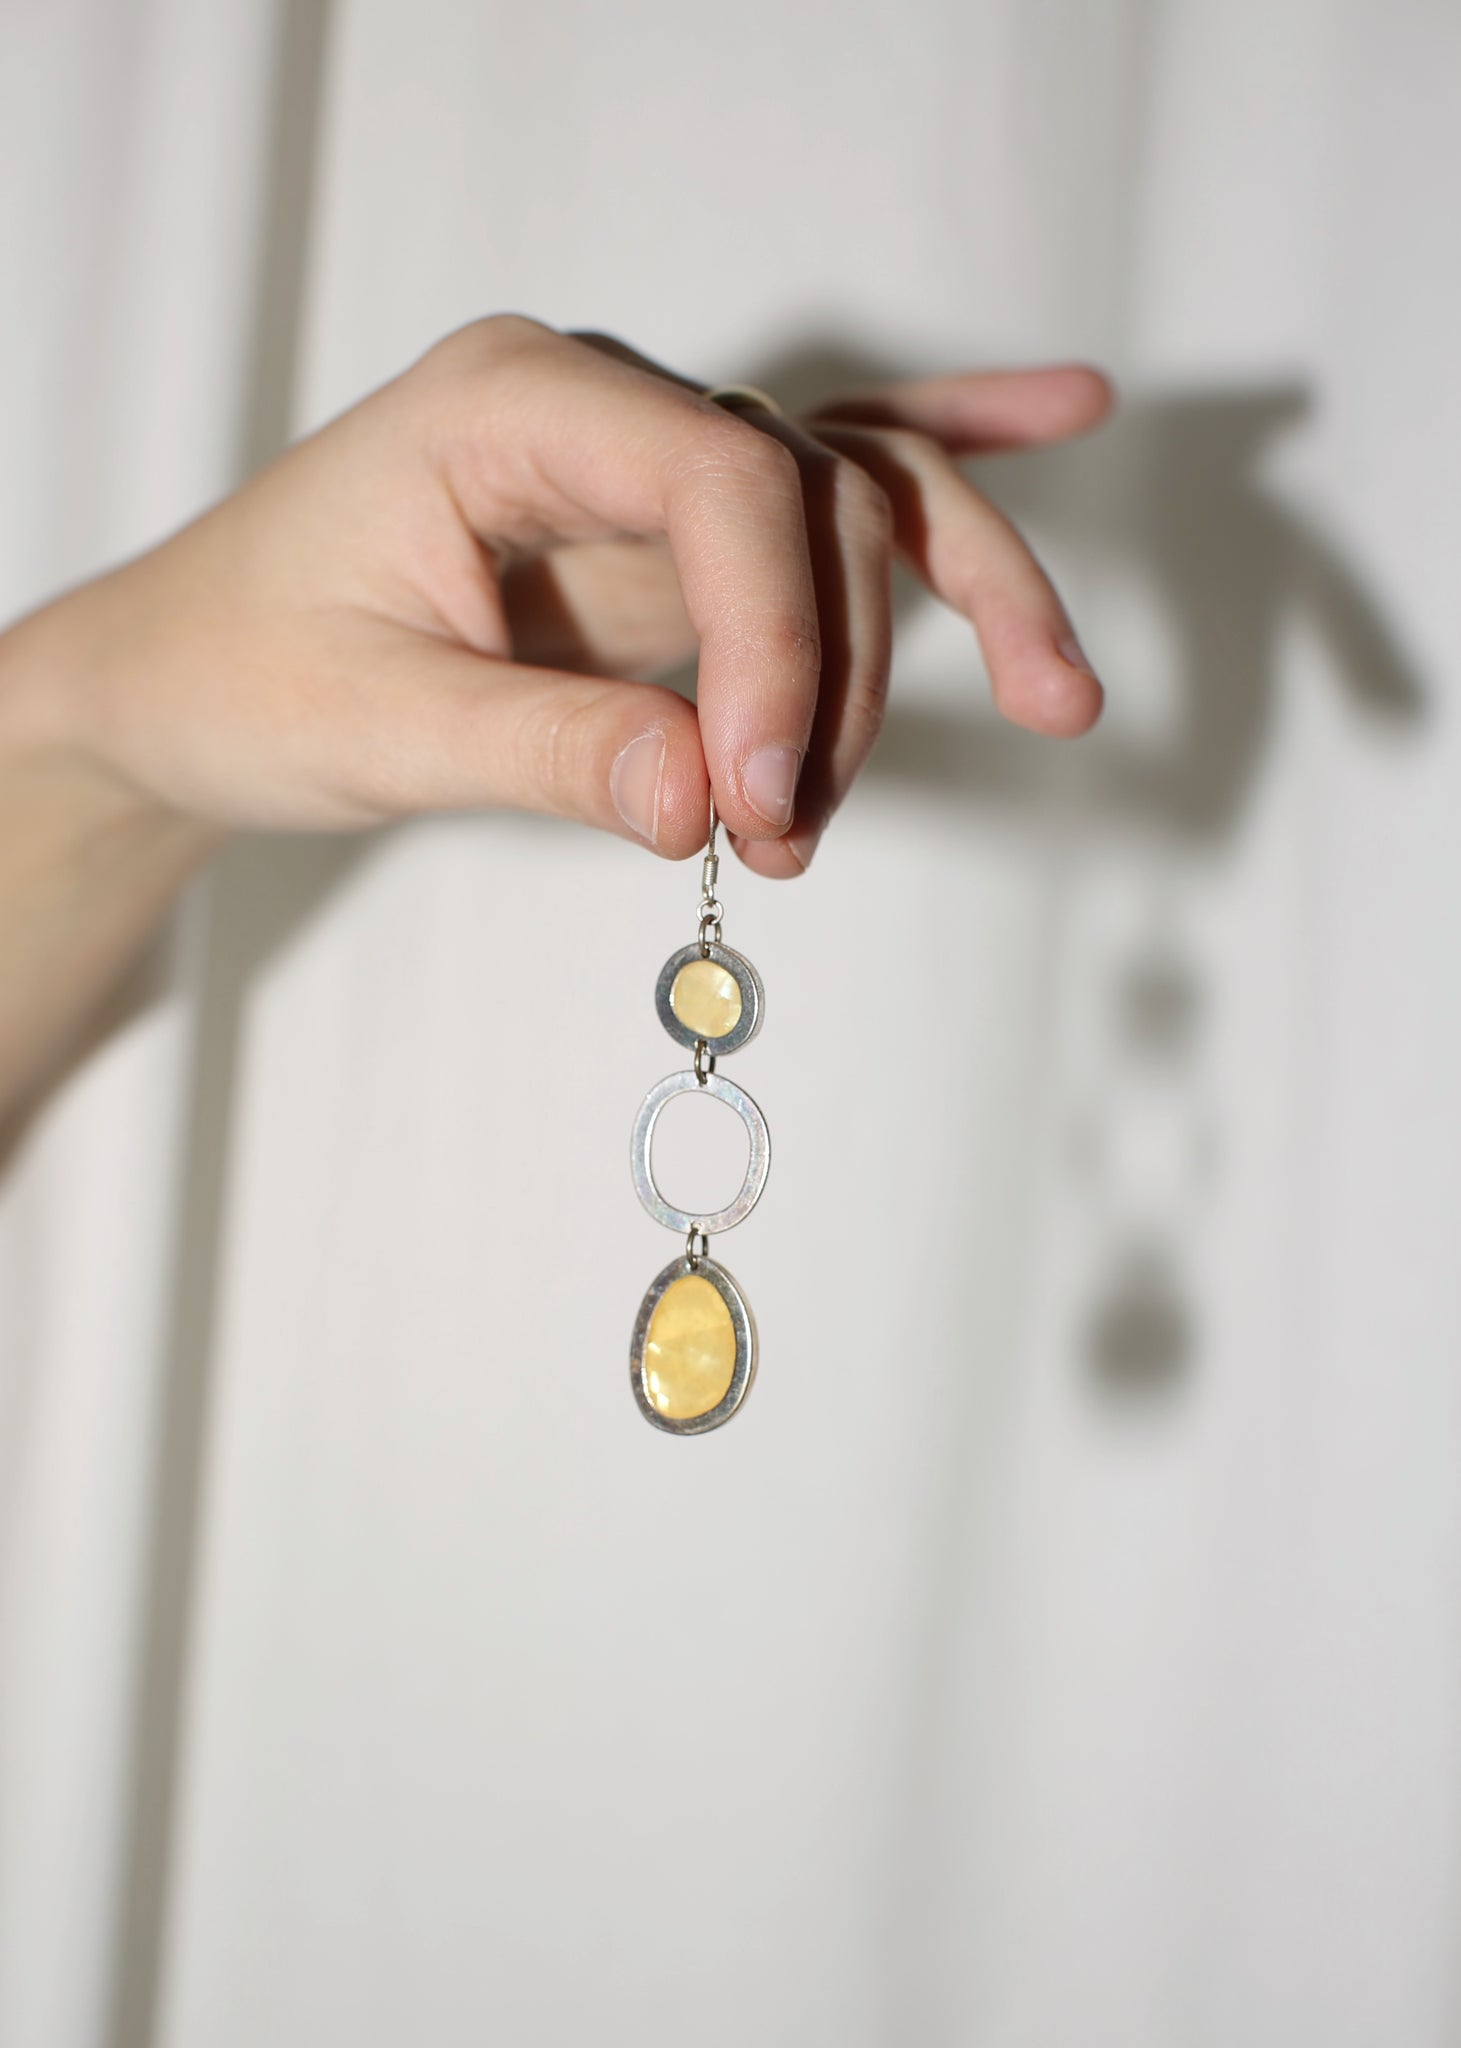 VINTAGE SILVER & YELLOW DROP EARRINGS